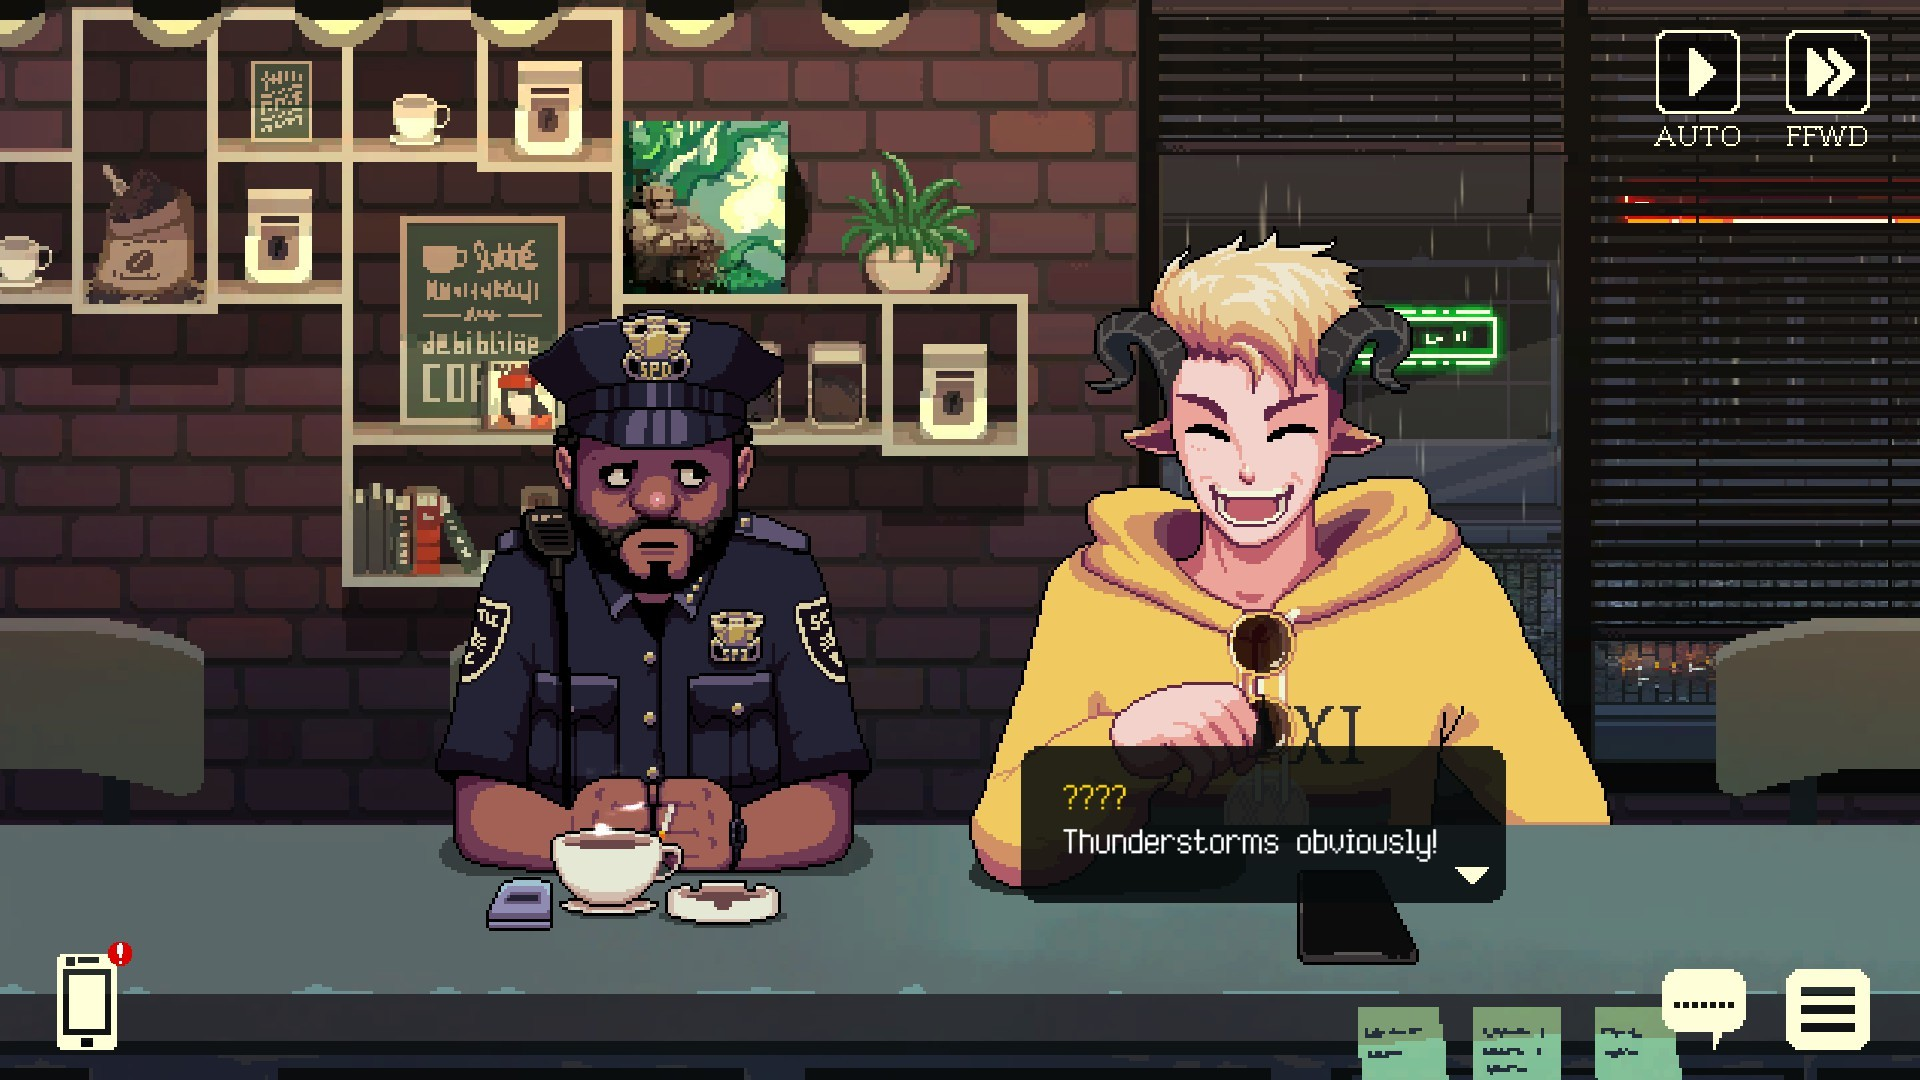 A police officer and horned man discuss thunderstorms in a coffee shop.